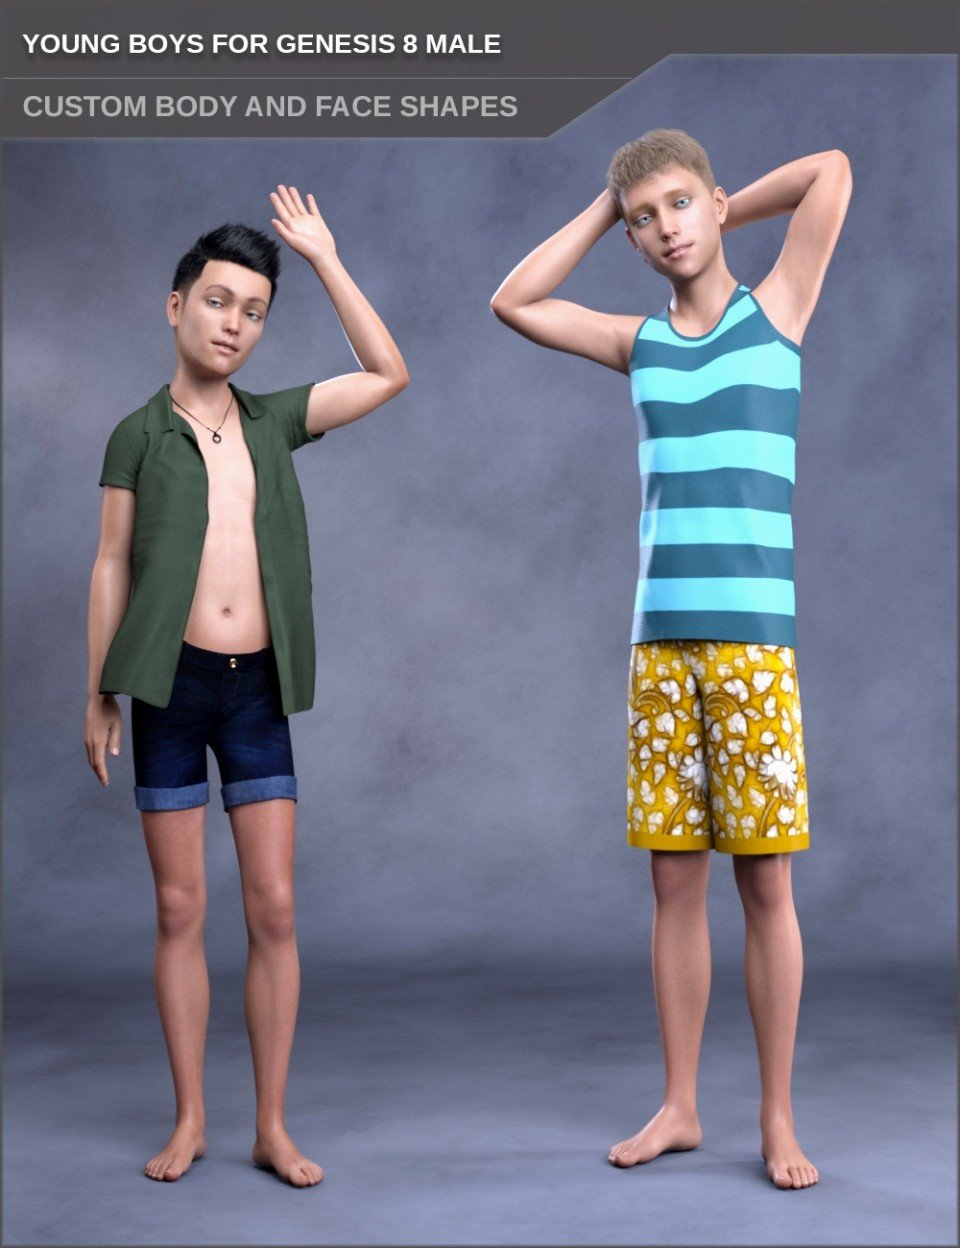 Young Boys for Genesis 8 Male_DAZ3D下载站